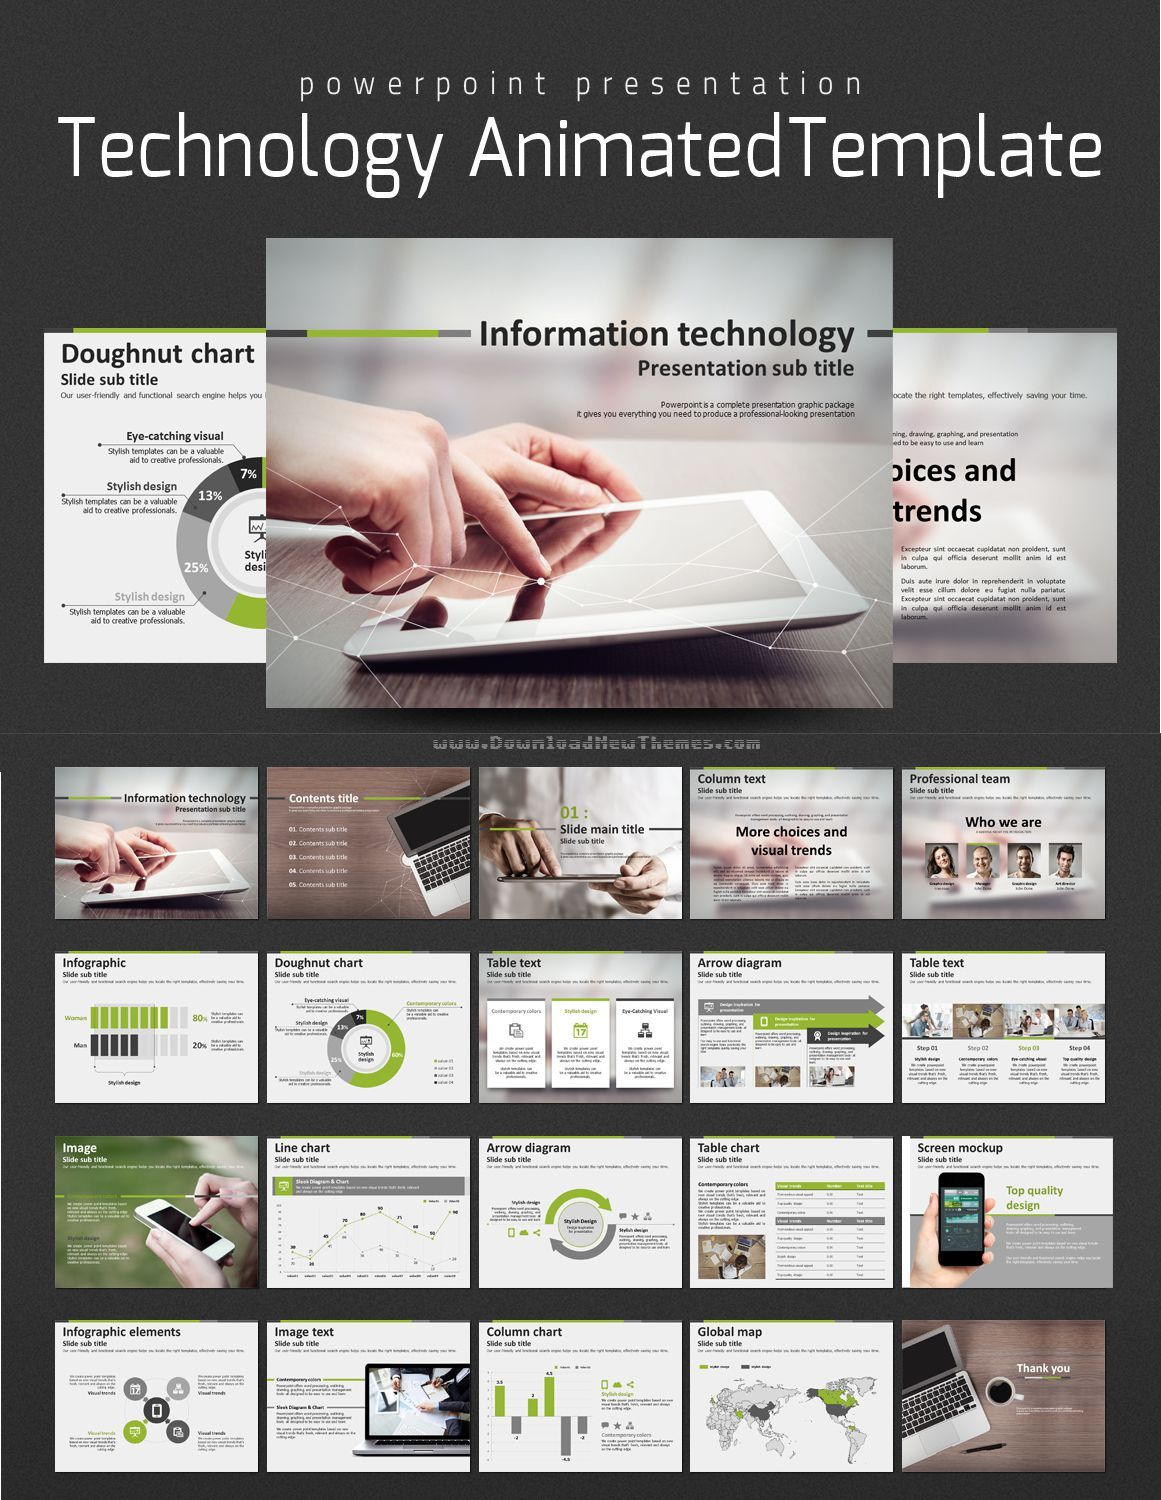 Technology animated template pinterest template technology animated powerpoint template will be found appropriate and suitable for it businesses especially for introducing mechanics technology and toneelgroepblik Choice Image